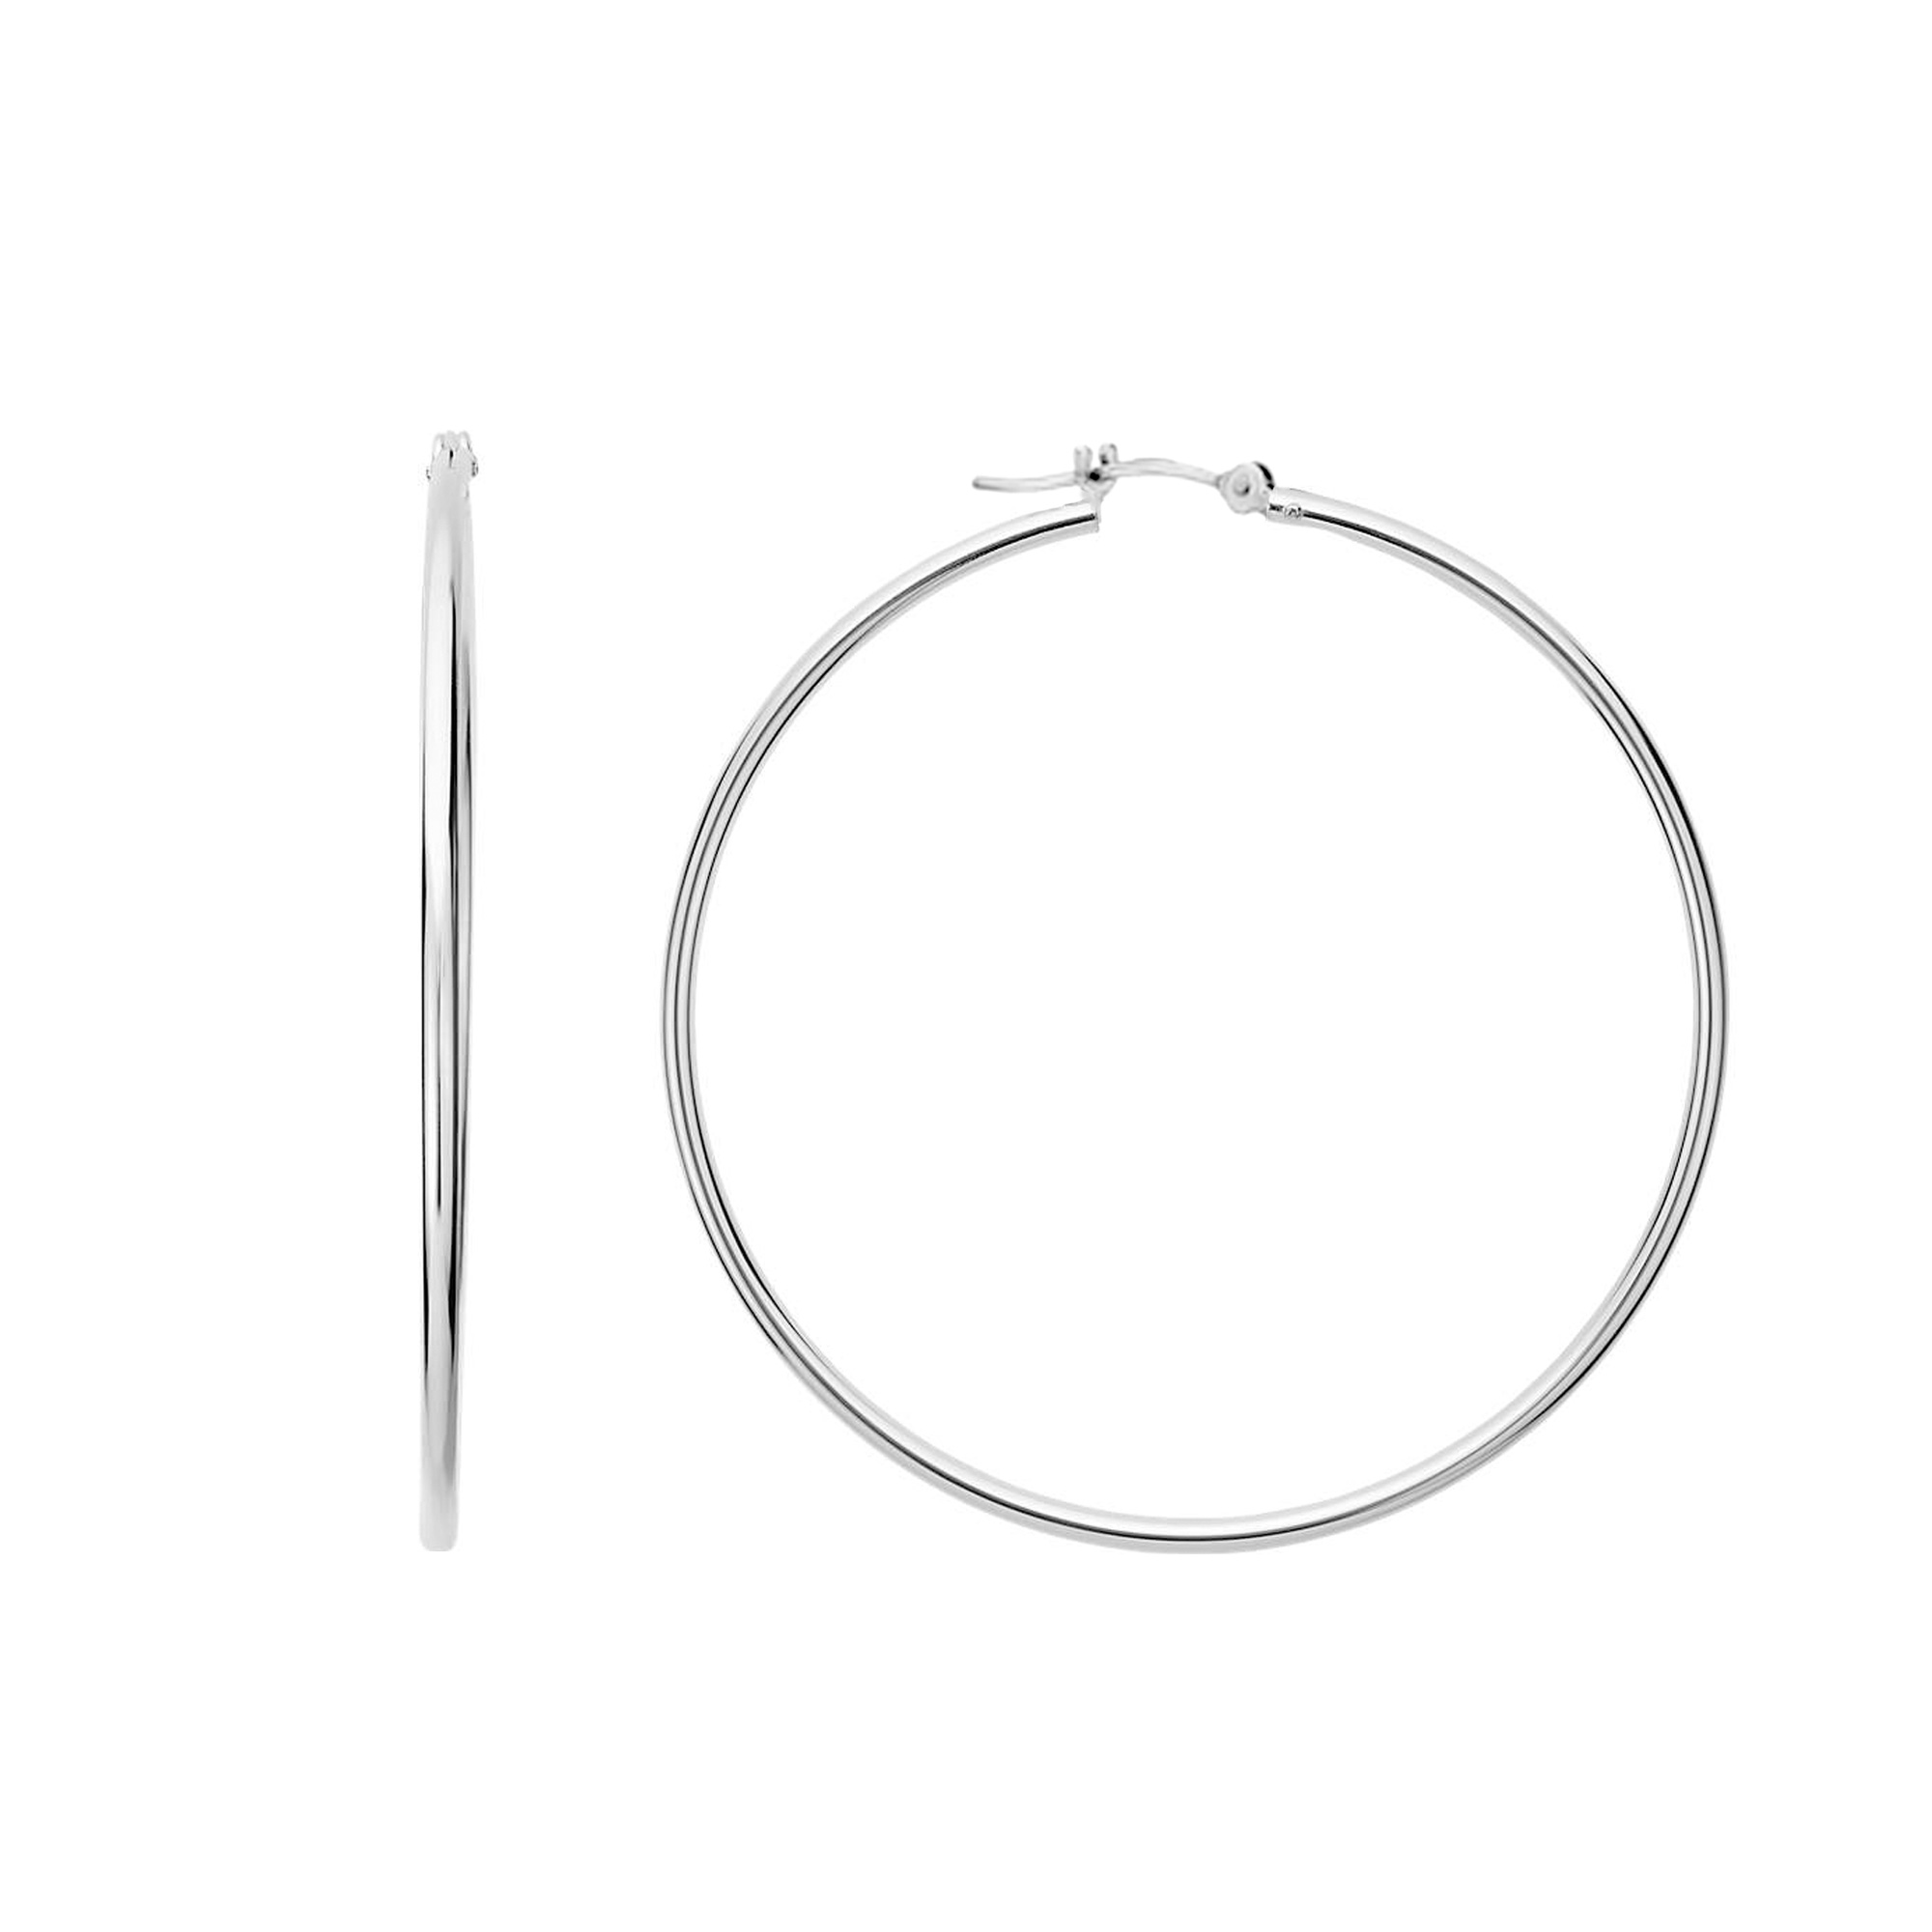 10k White Gold 1.5mm Shiny Round Tube Hoop Earrings, Diameter 30mm Complete your jewelry collection with a gorgeous pair of 10k gold hoop earrings. Whether you prefer large bohemian look or tiny orbs, you'll discover plenty of sizes to match your style. These earrings have a secure snap post clasp making them easy to wear and remove.